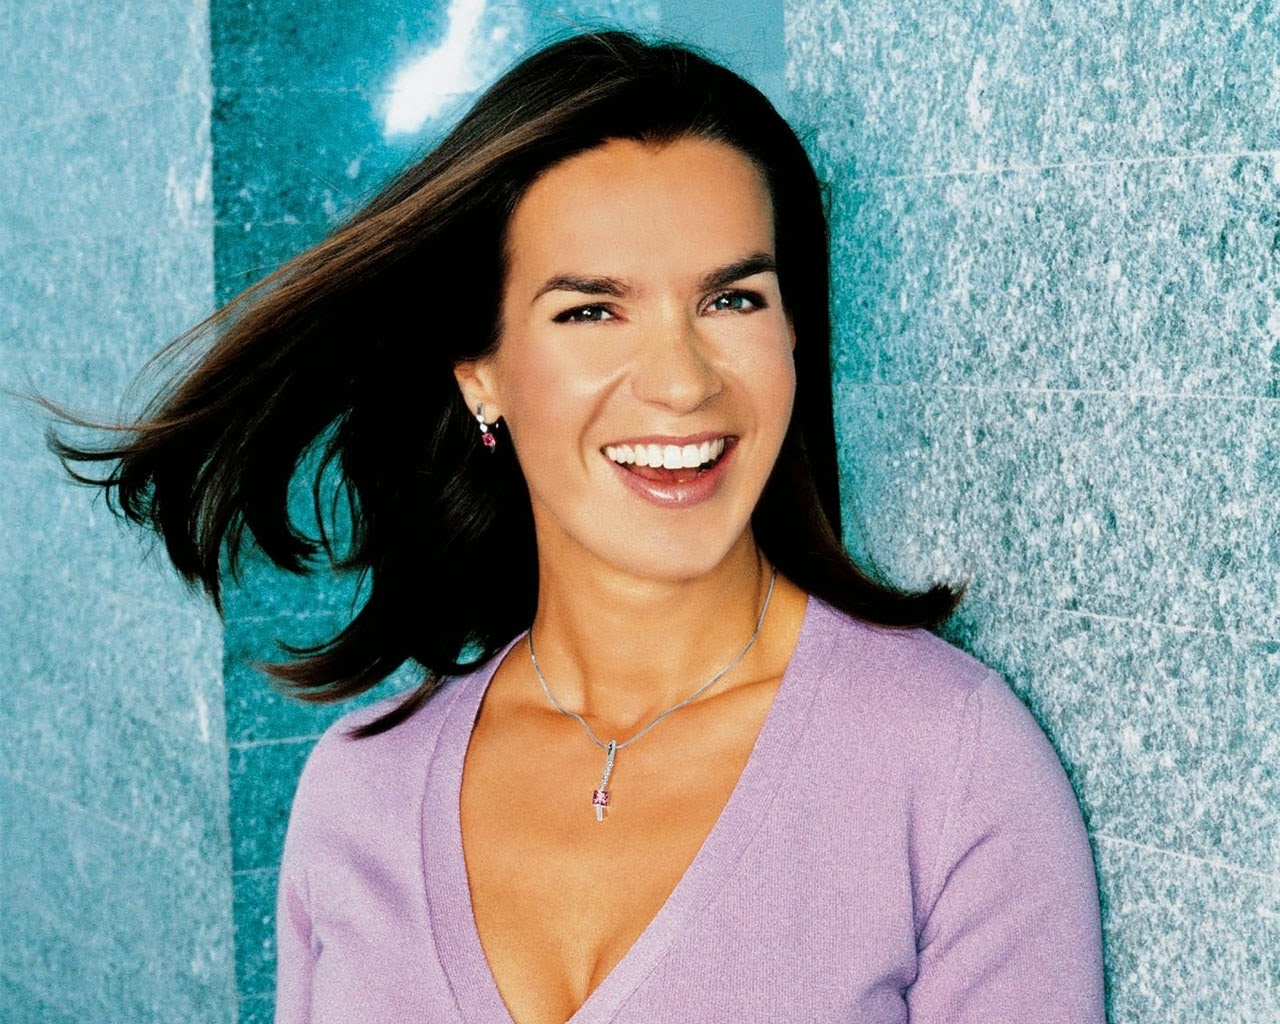 katarina witt wiki deutschkatarina witt deutsche, katarina witt carmen, katarina witt stiftung, katarina witt gold medal, katarina witt skating, katarina witt partner, katarina witt personal, katarina witt lebenslauf, katarina witt interview, katarina witt 1988 costume, katarina witt eltern, katarina witt wiki deutsch, katarina witt biografie, katarina witt wikipedia deutsch, katarina witt heute, katarina witt instagram, katarina witt biography, katarina witt husband, katarina witt wohnung, katarina witt carmen bizet